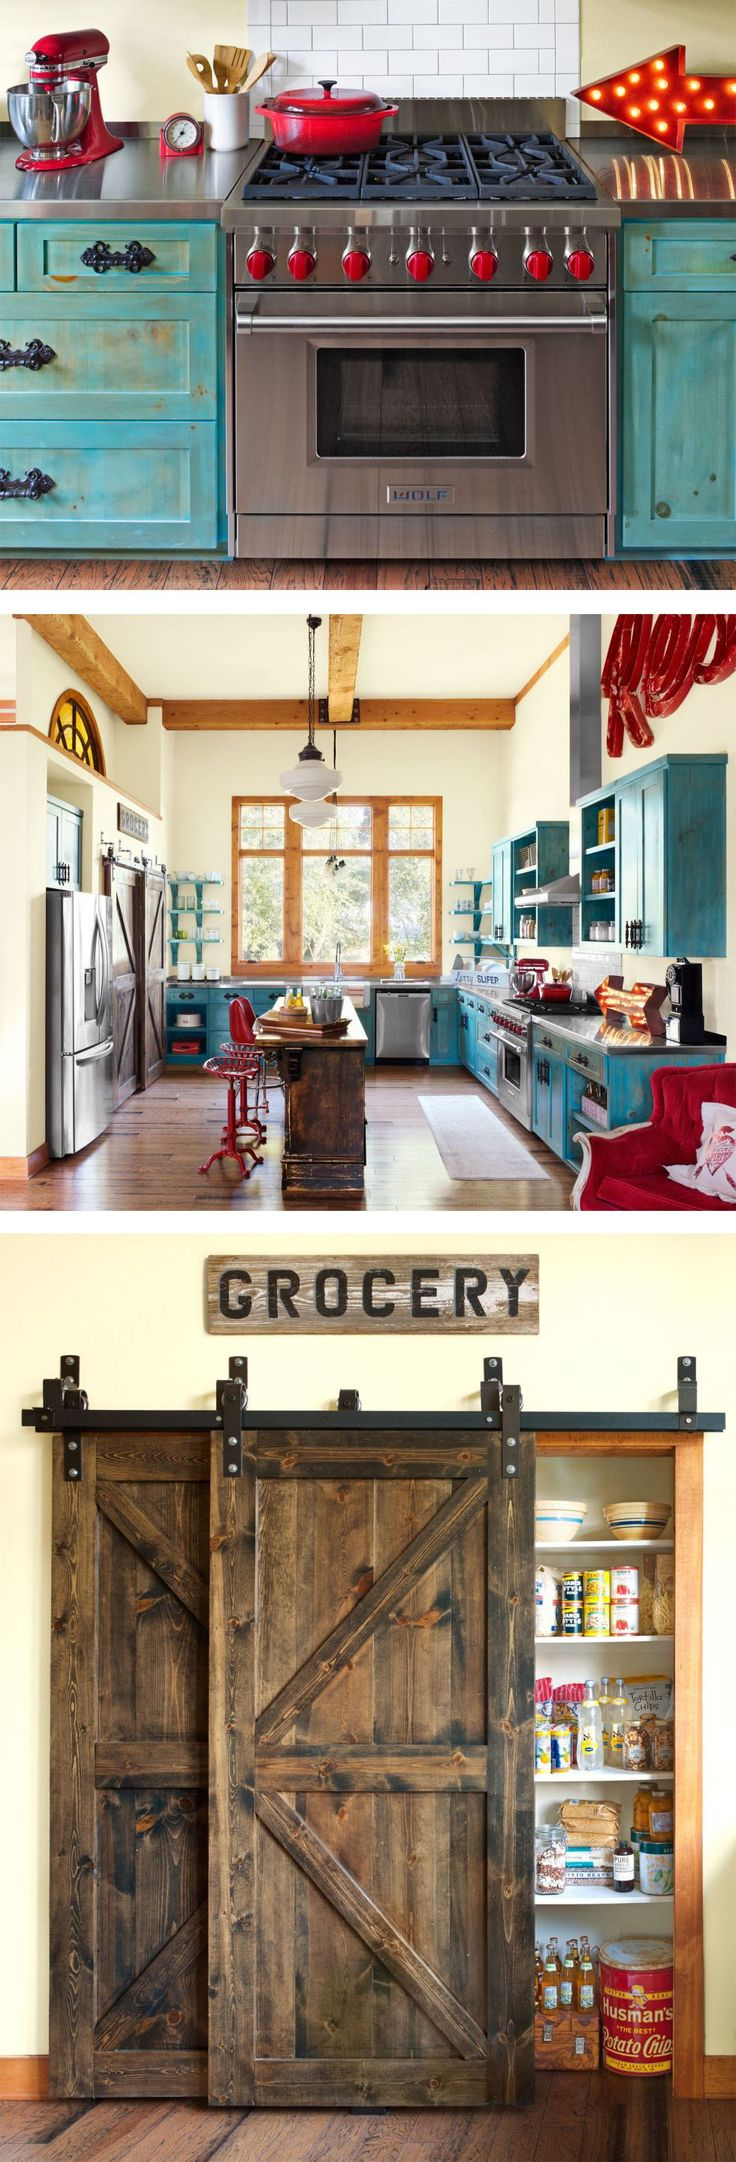 Best 25+ Vintage houses ideas on Pinterest | Old victorian houses ...